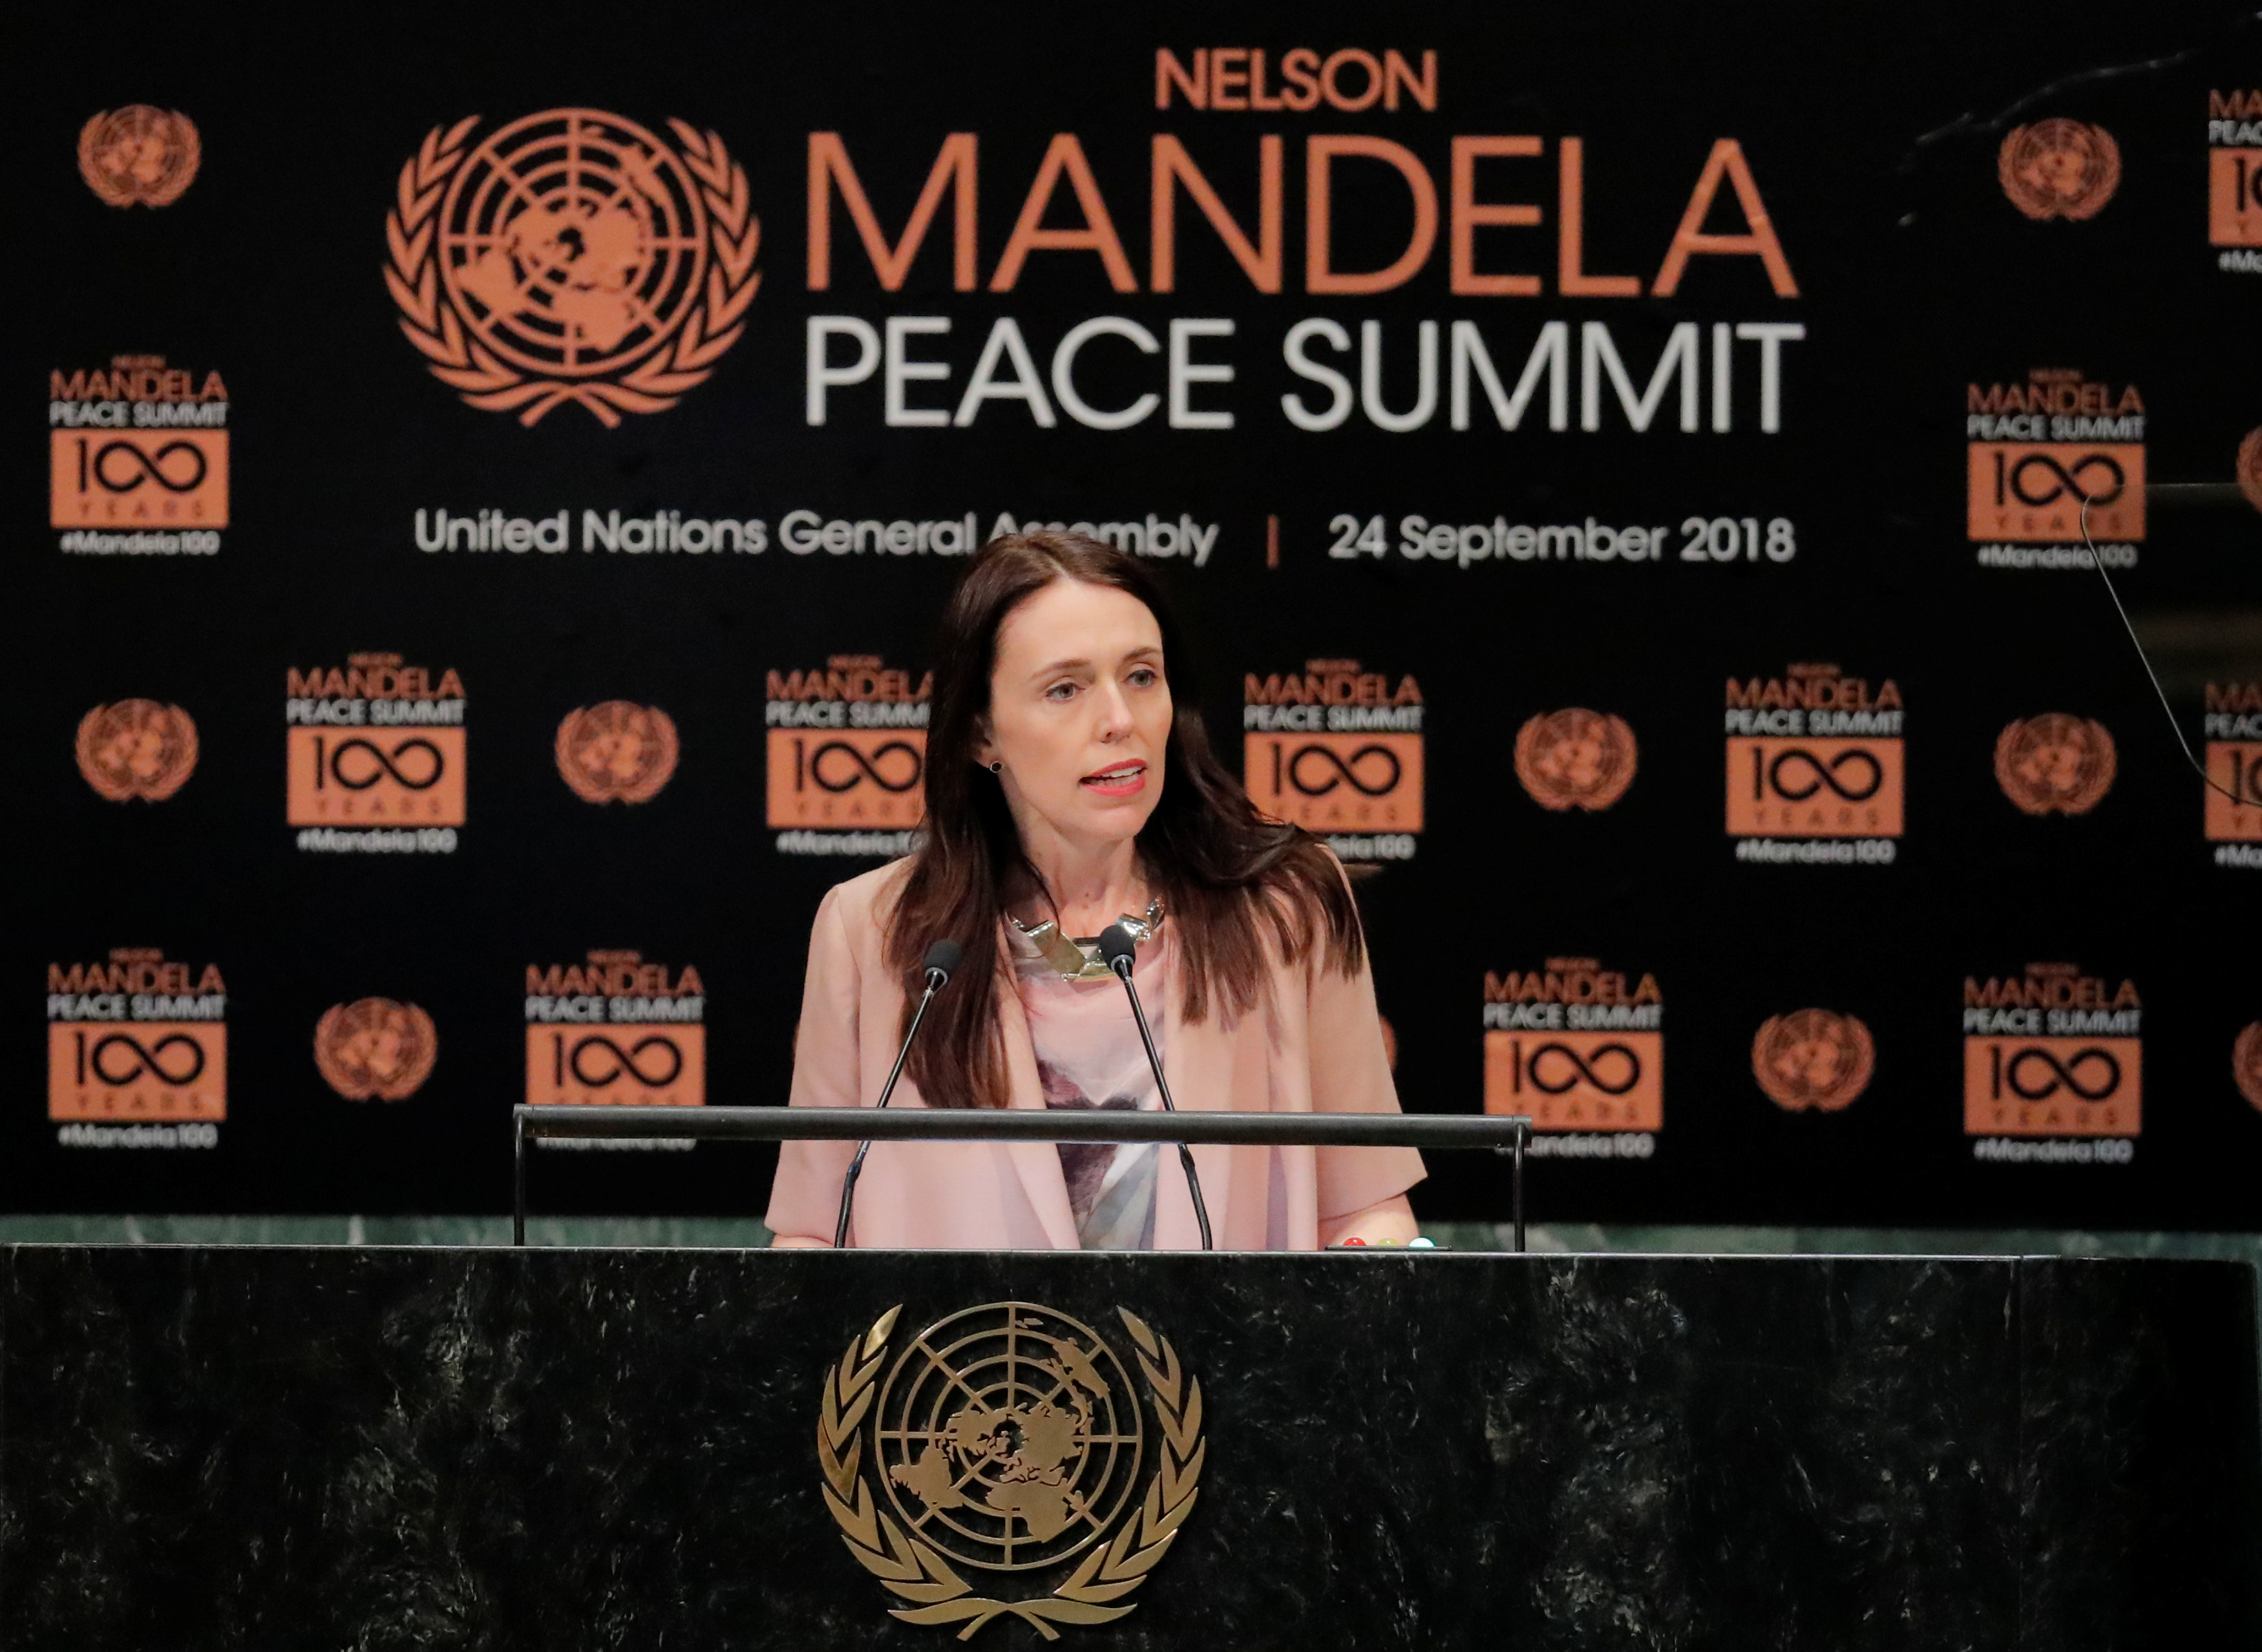 New Zealand Prime Minister Jacinda Ardern arrives speaks at the Nelson Mandela Peace Summit during the 73rd United Nations General Assembly in New York, U.S., September 24, 2018. REUTERS/Lucas Jackson